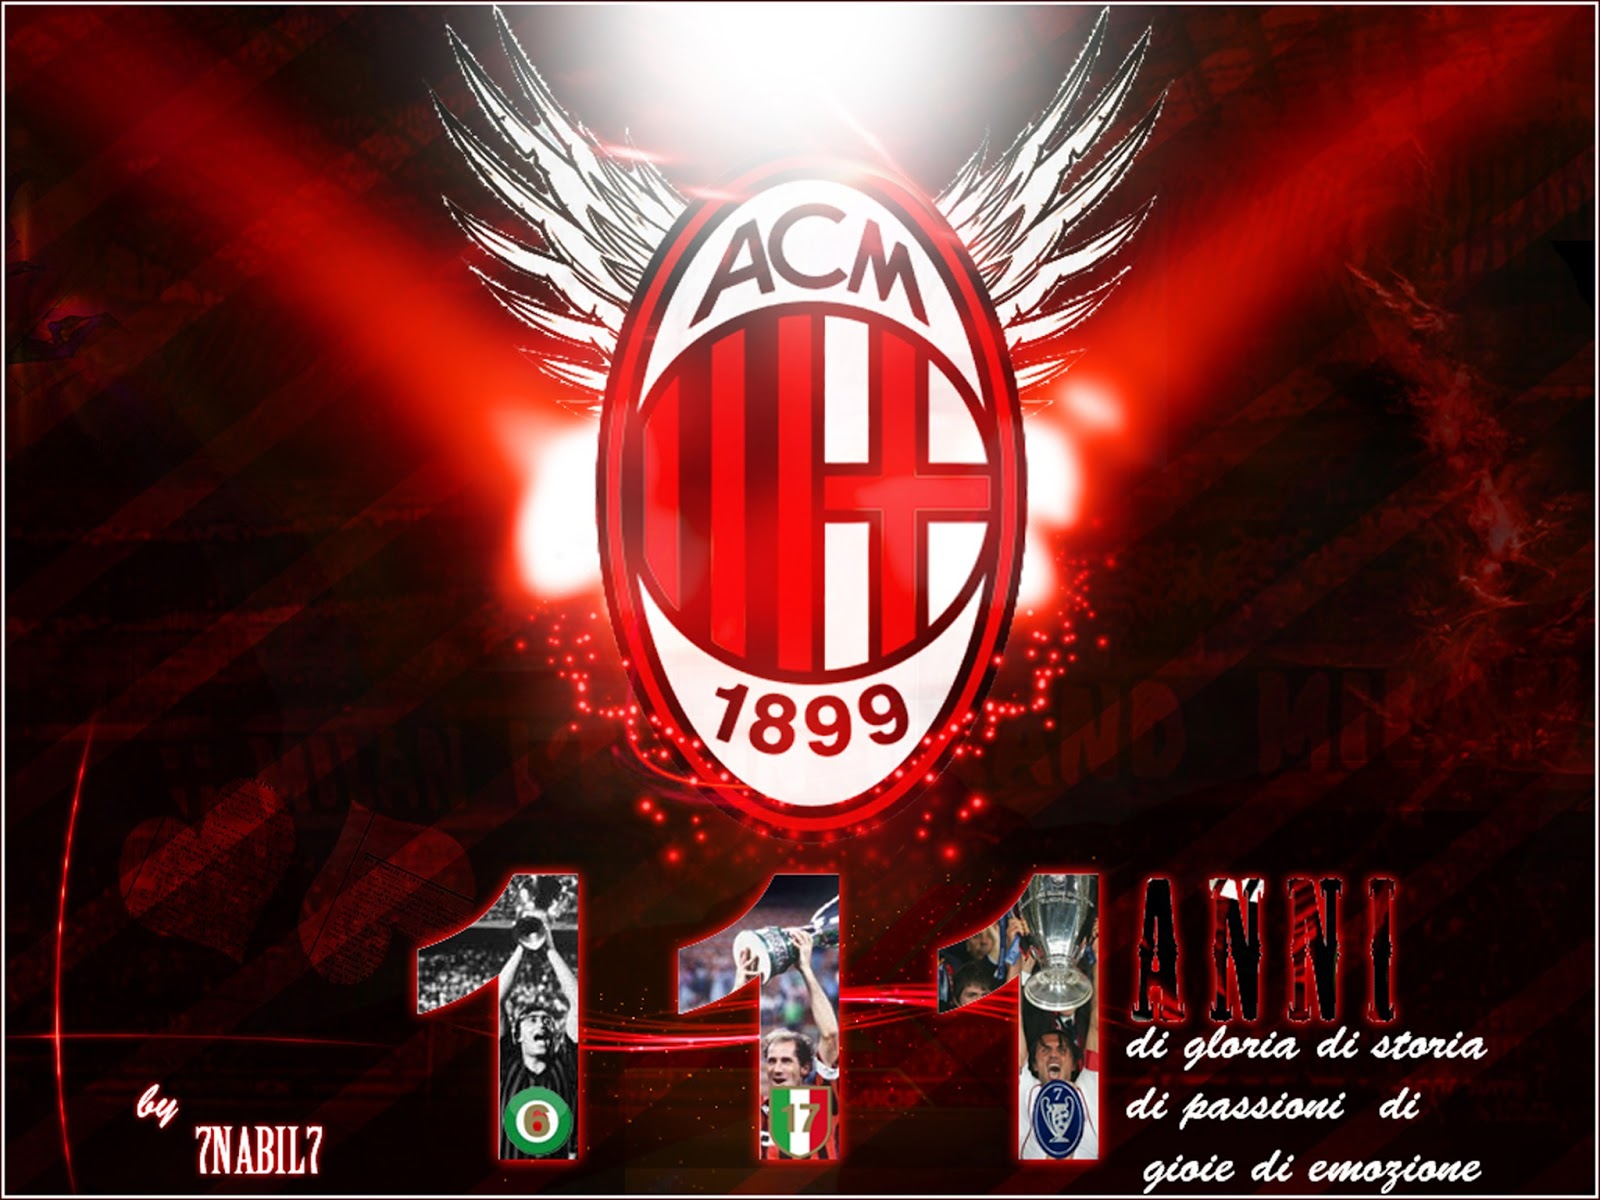 w ac milan it - photo#27